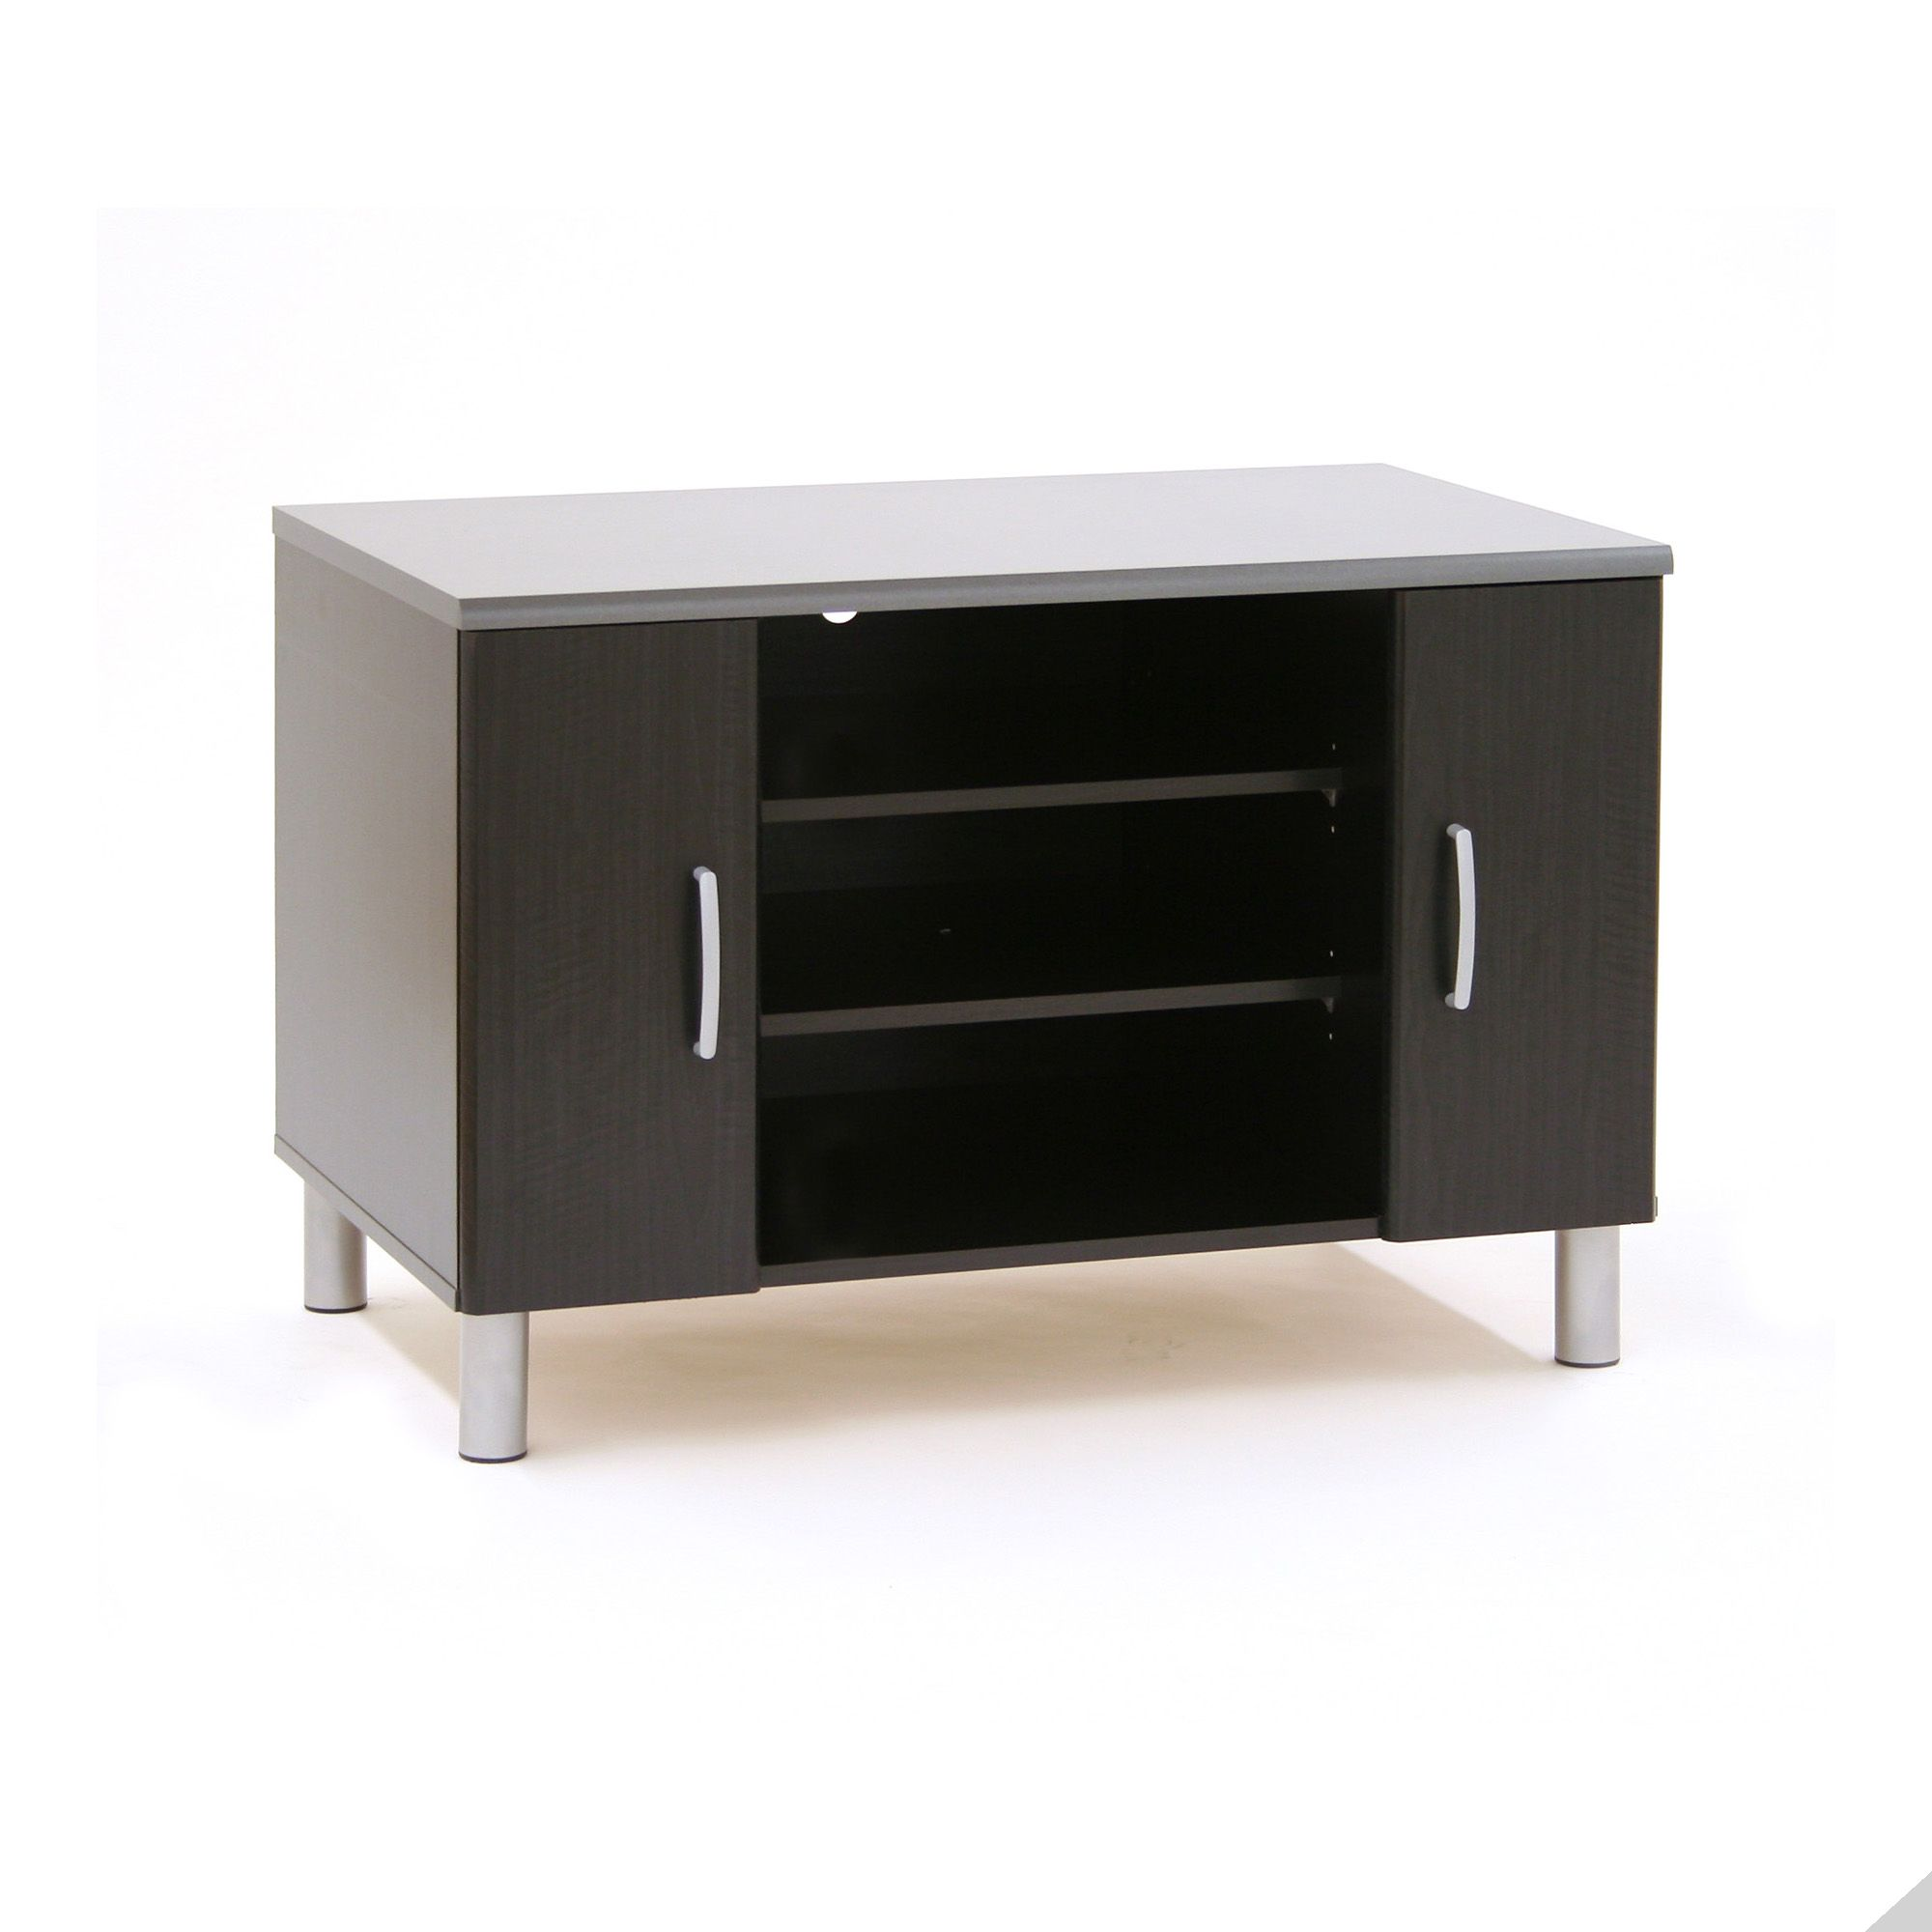 This TV stand may be used as an addition to the Cosmos